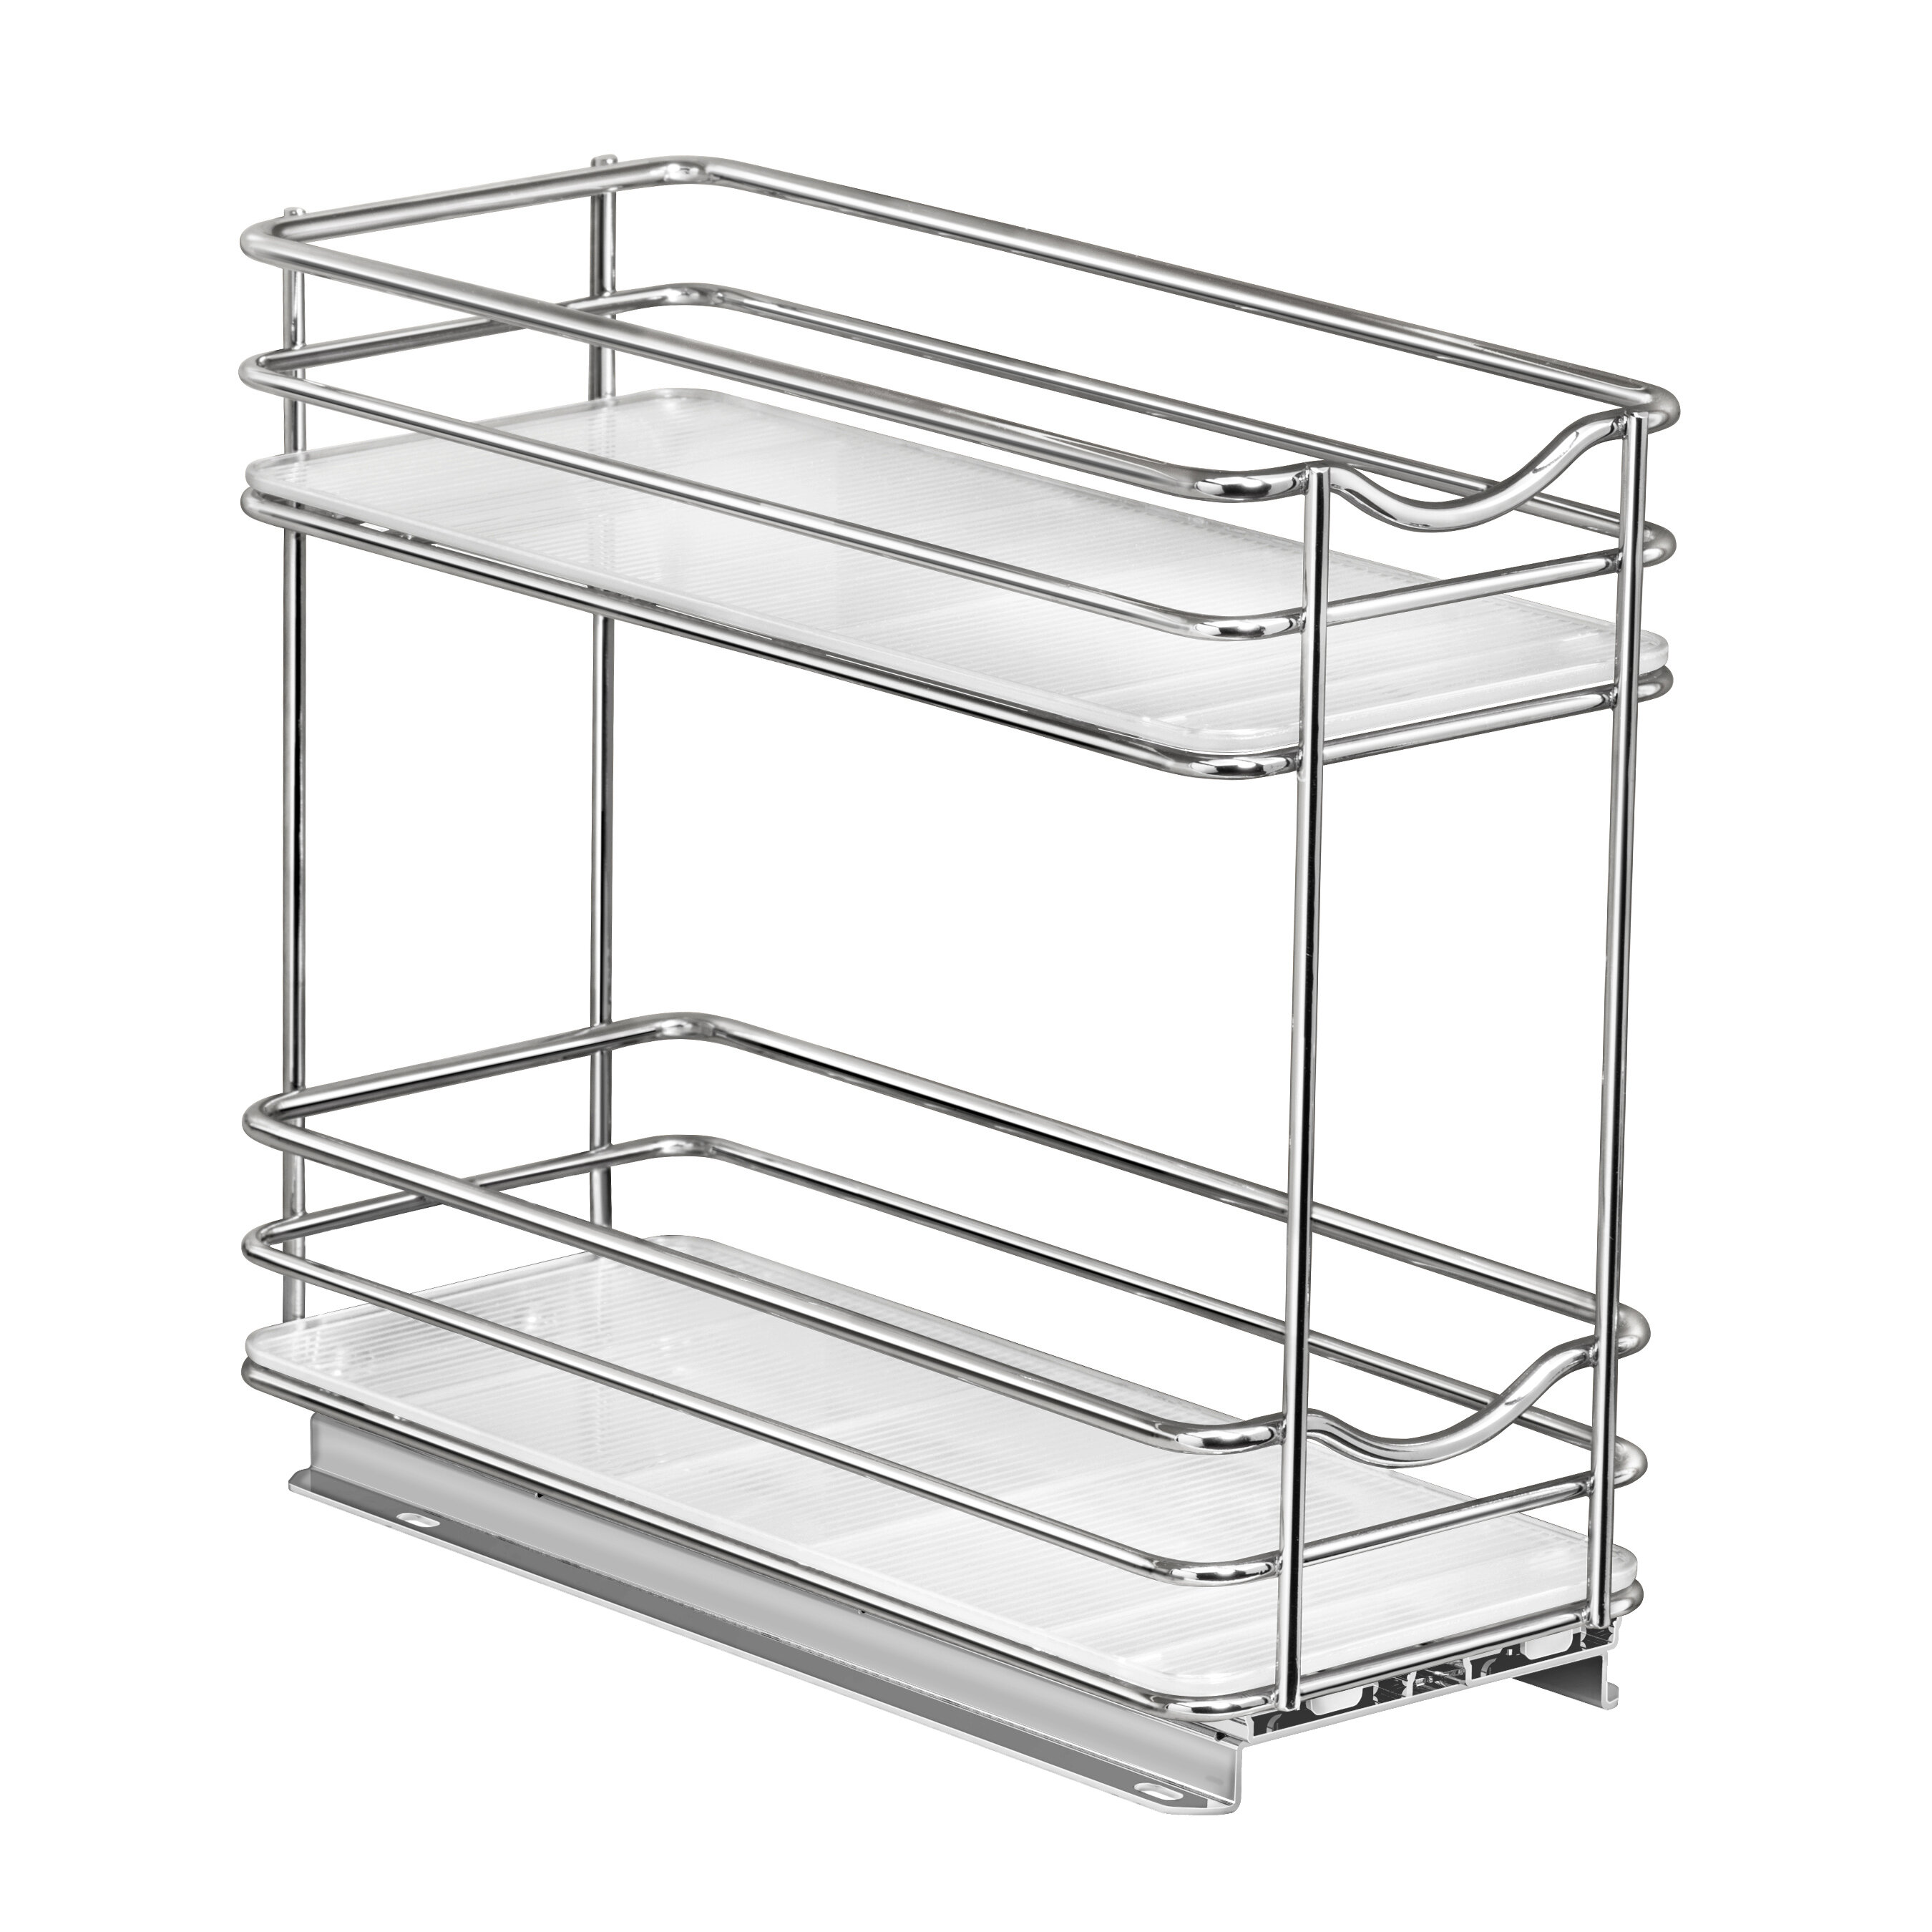 Image of: Lynk Professional Slide Out Double Upper Cabinet Organizer 20 Jar Spice Rack Reviews Wayfair